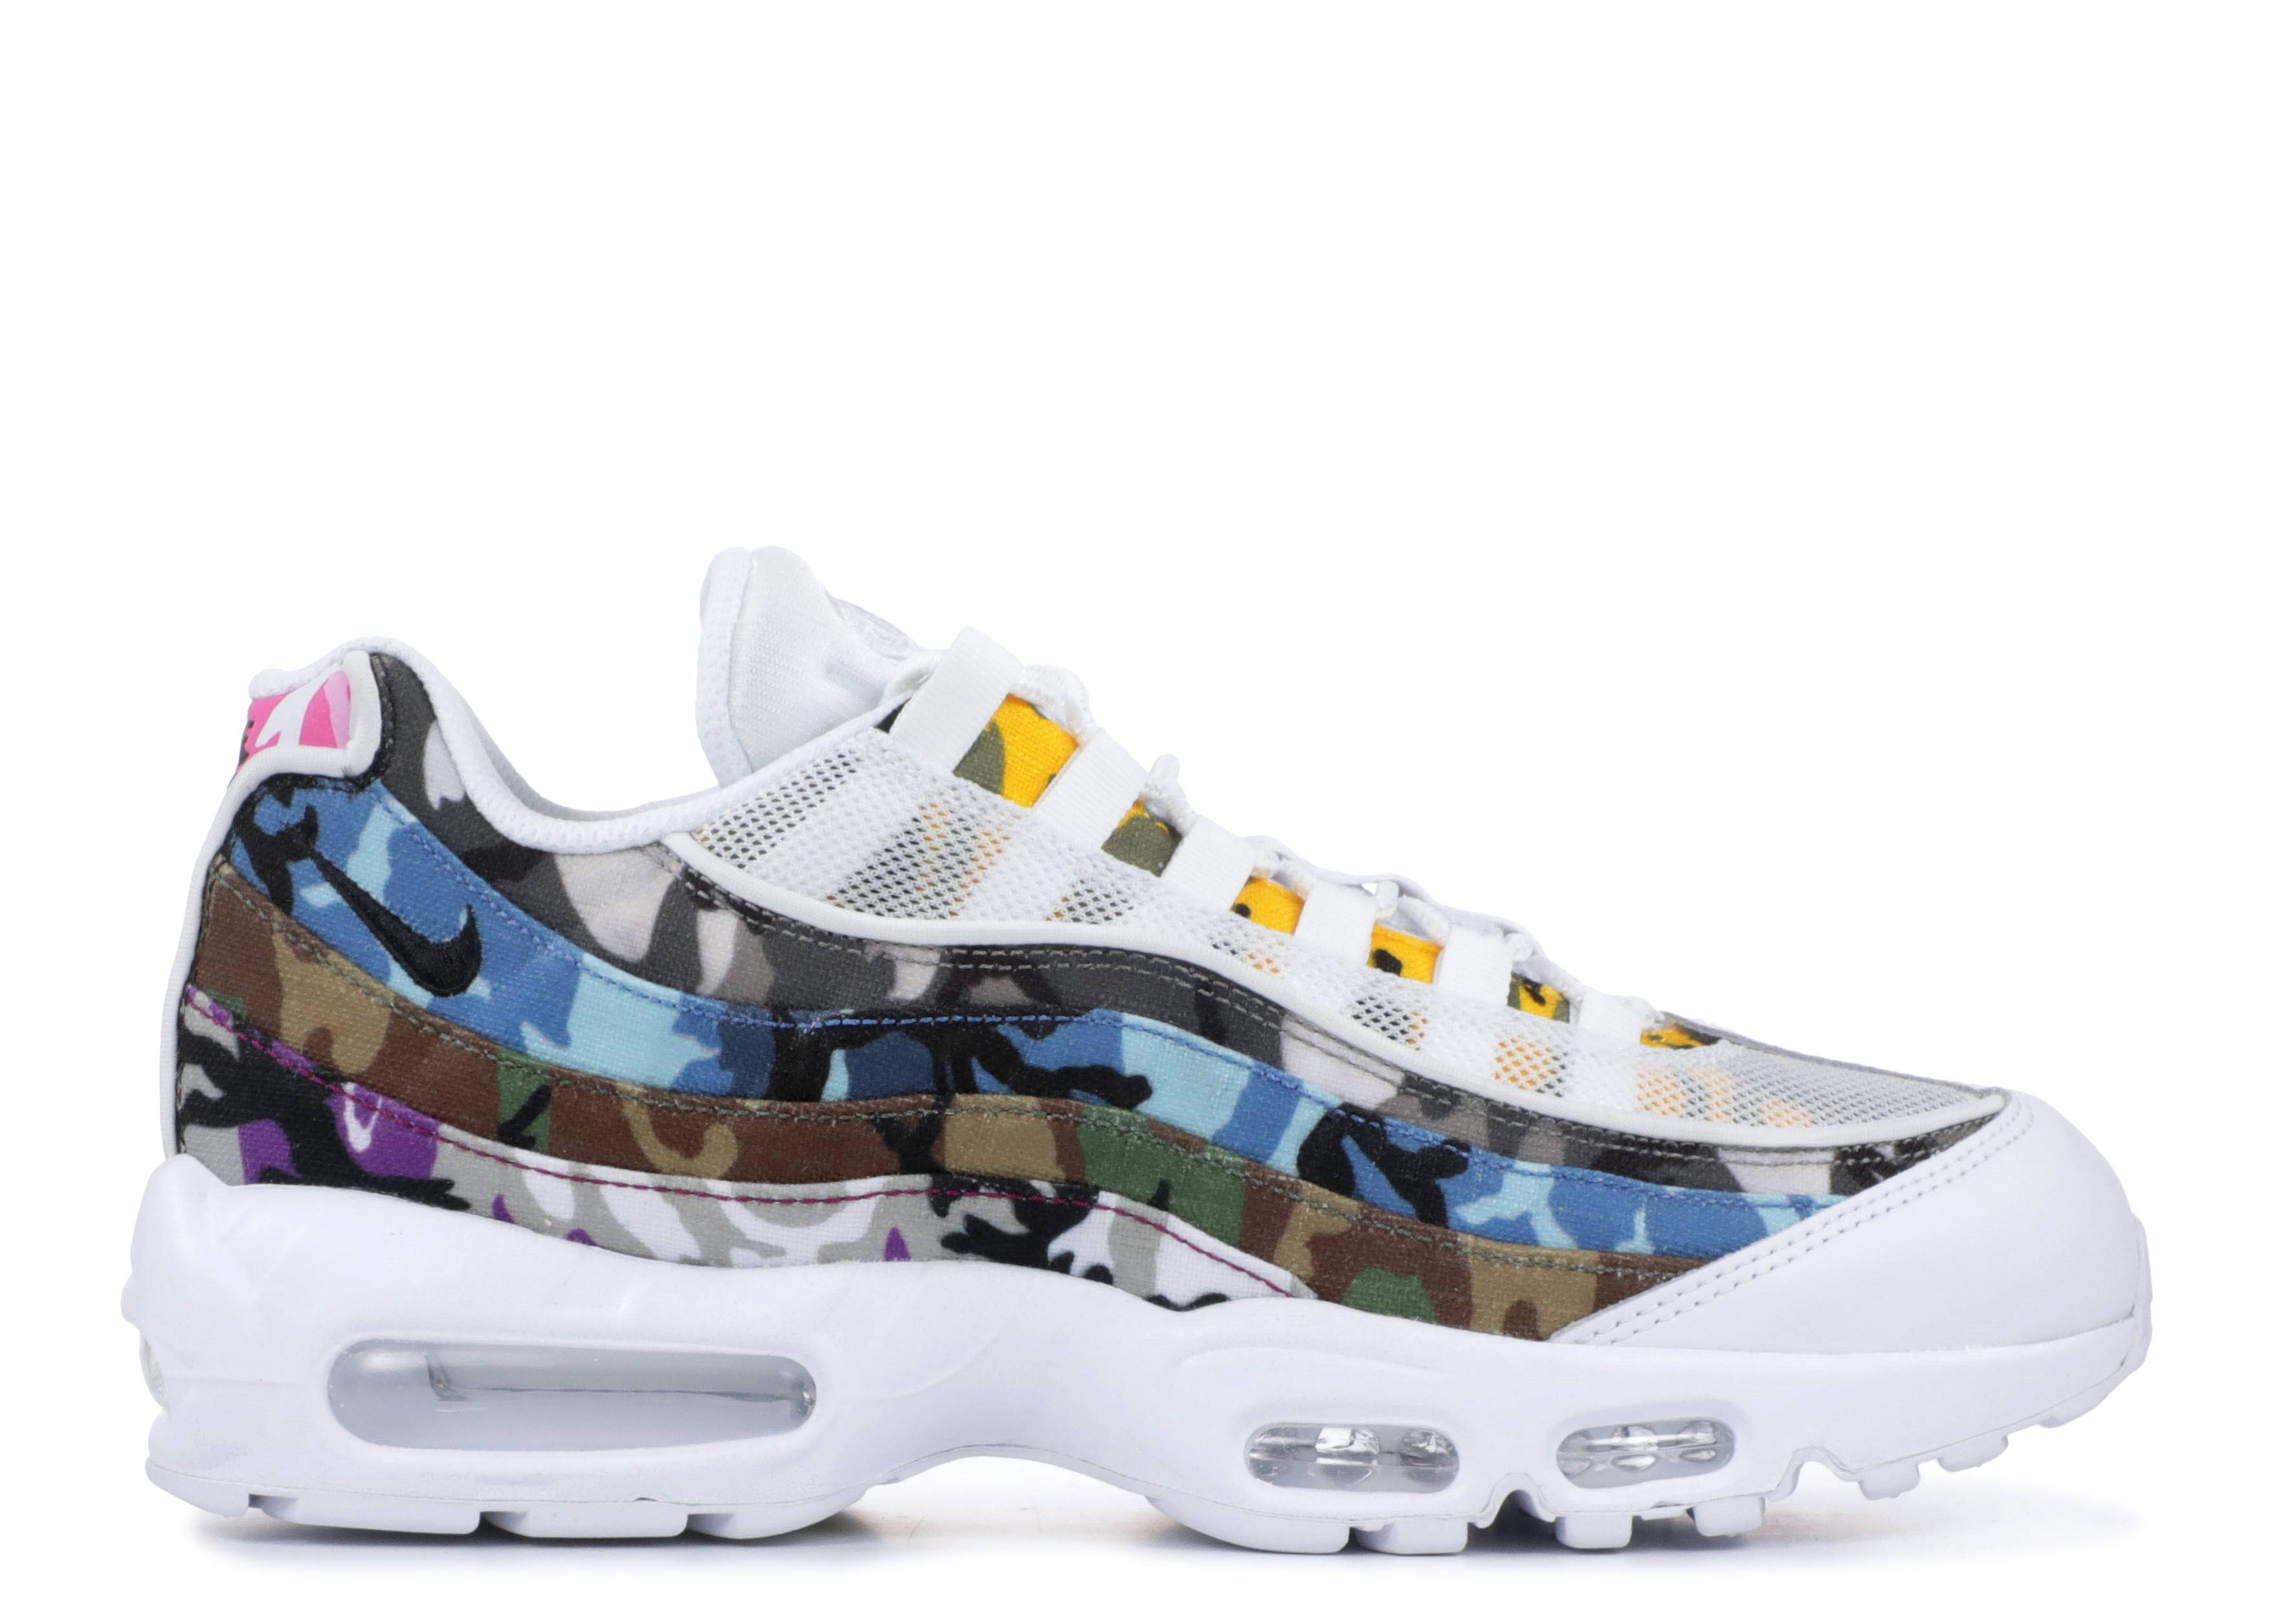 Fatídico Lijadoras falta de aliento  Air Max 95 'ERDL Party' - Nike - AR4473 100 - white/multi-color | Flight  Club